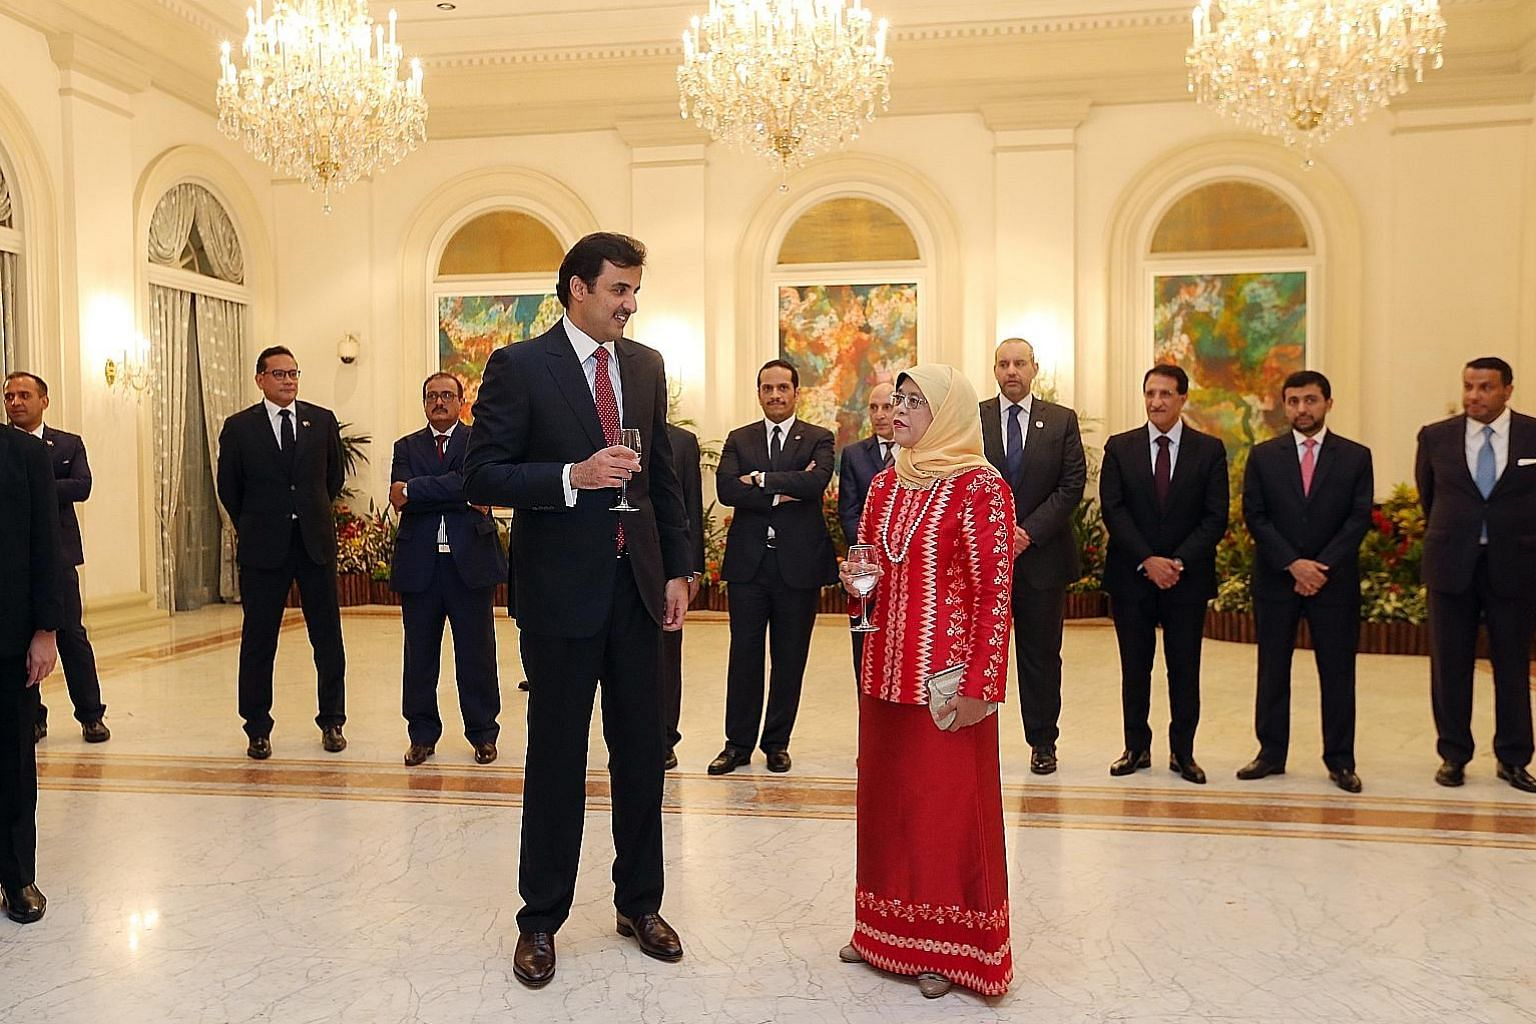 Qatari Emir Sheikh Tamim Bin Hamad al-Thani meeting President Halimah Yacob at a reception at the Istana yesterday. He thanked Madam Halimah for her interest in supporting the friendship between both countries. Sheikh Tamim with Prime Minister Lee Hs